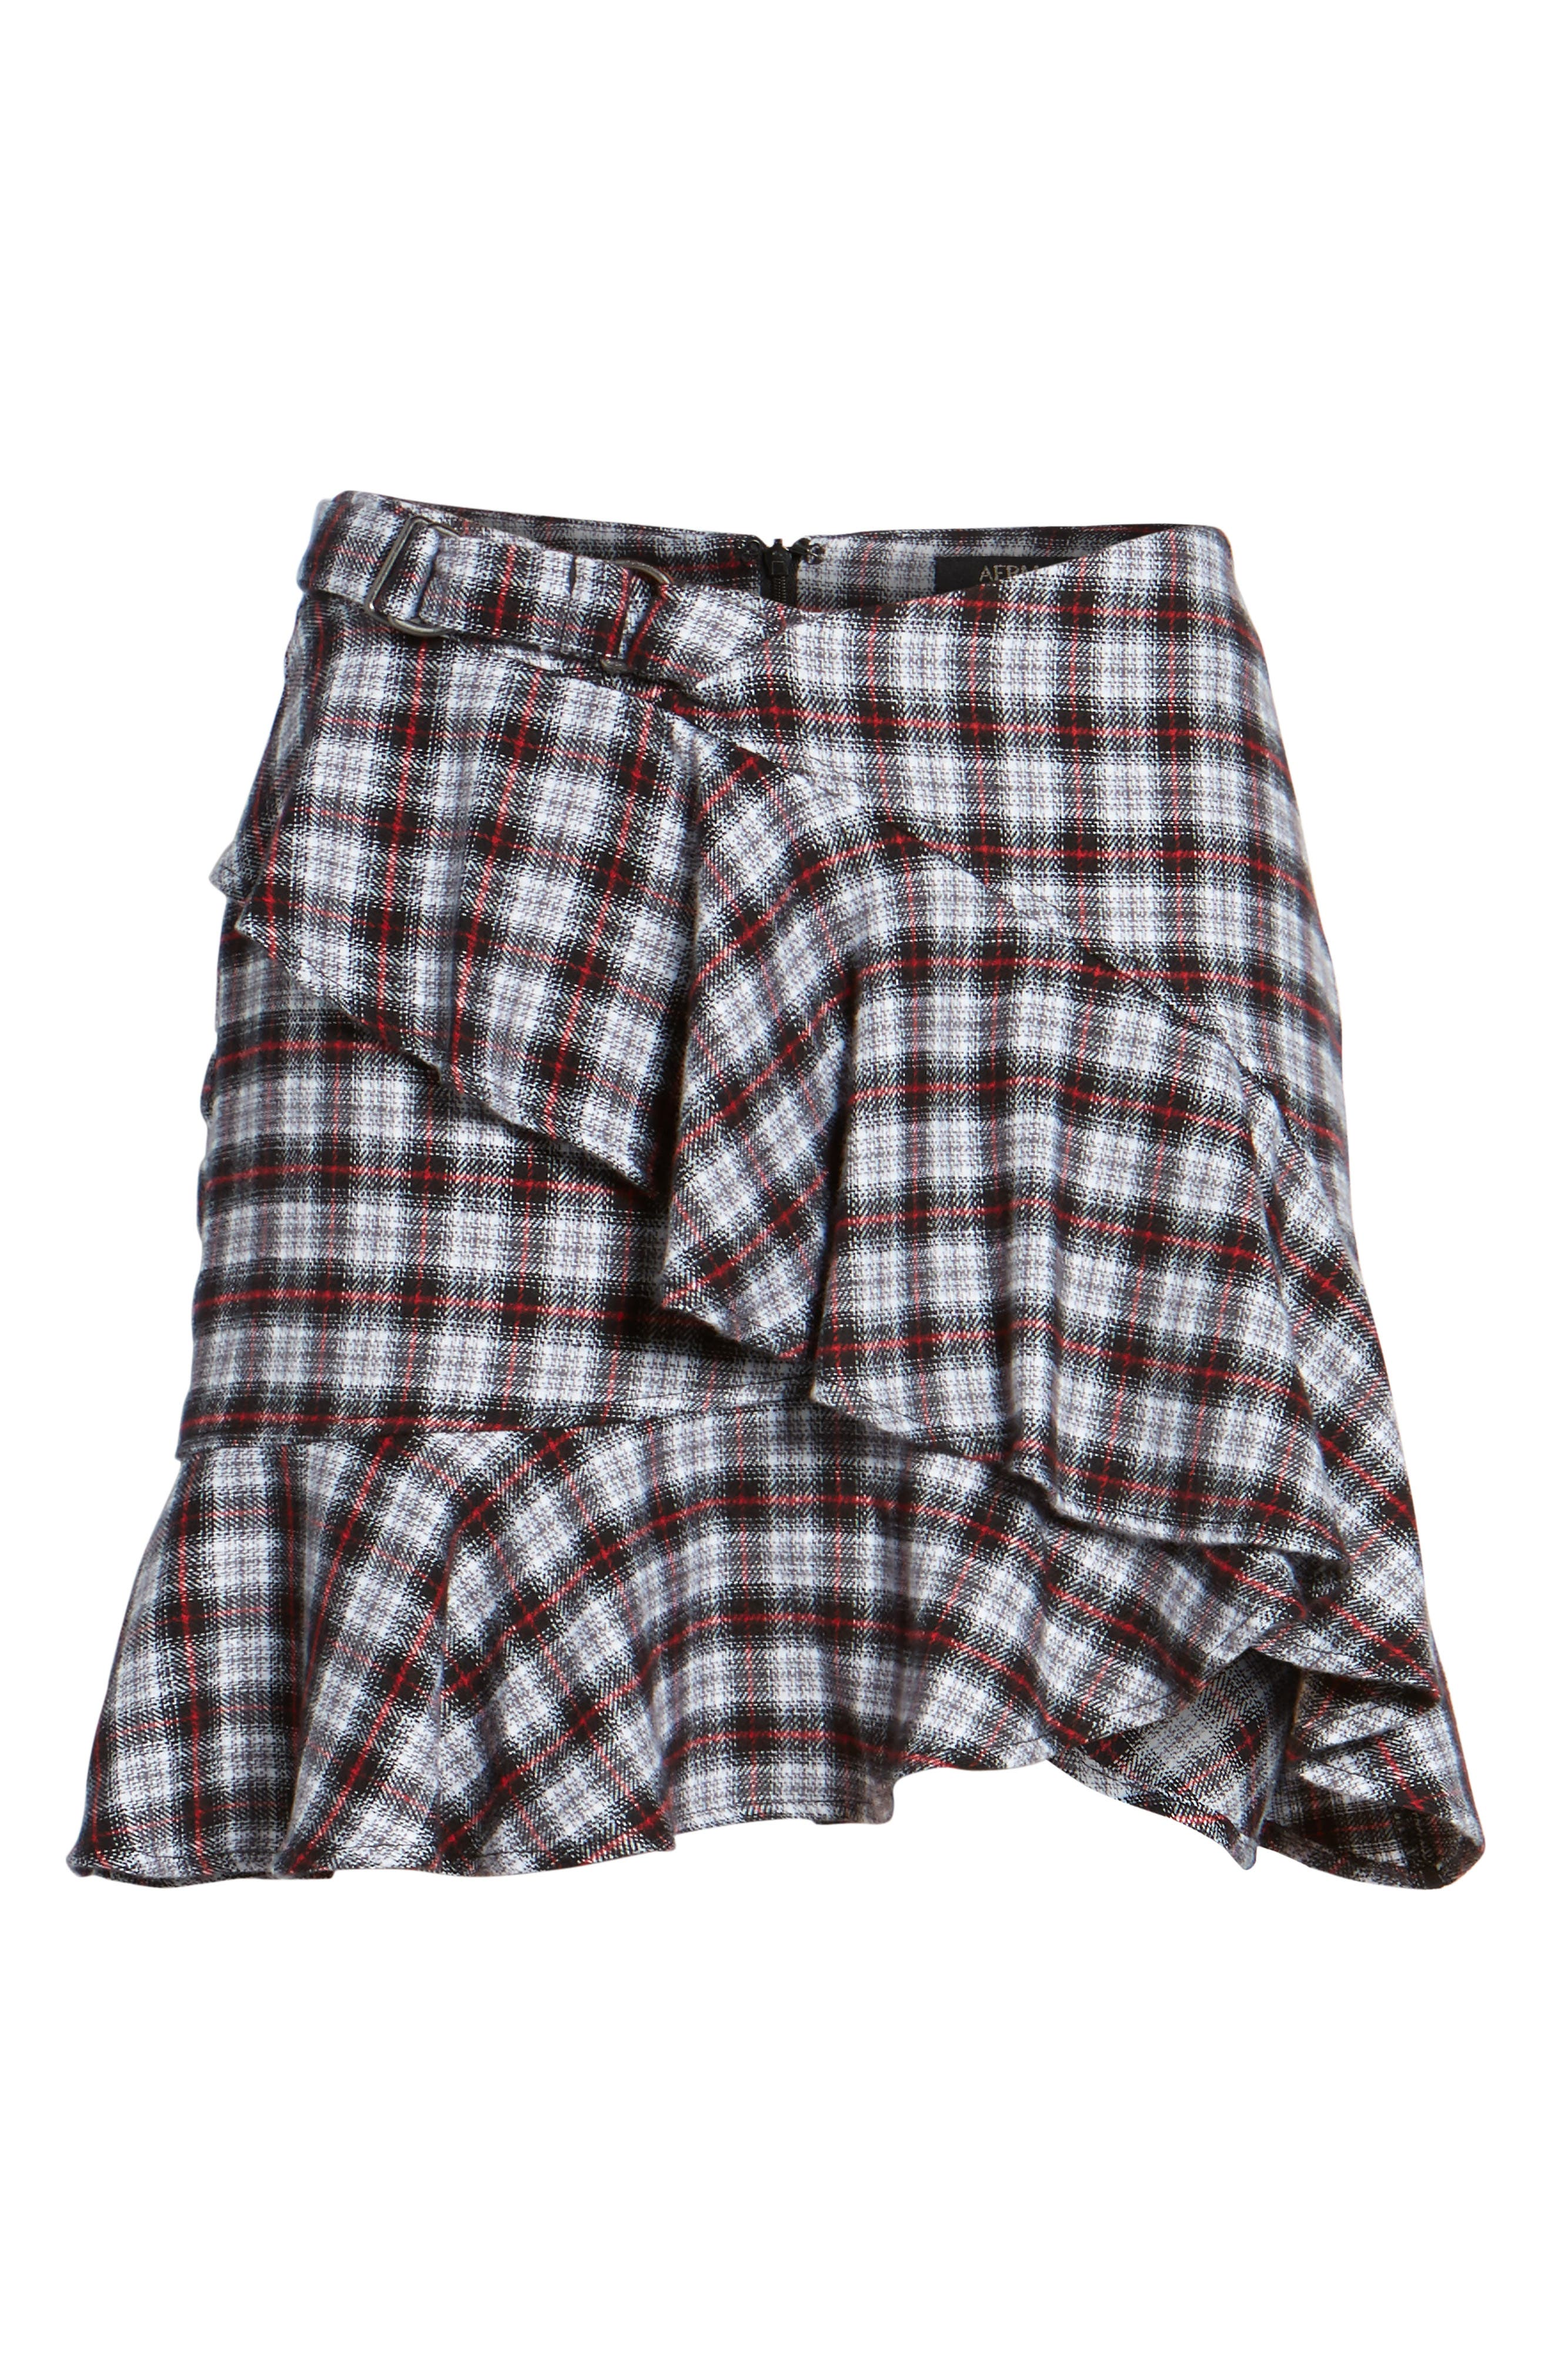 Dominic Asymmetrical Ruffle Skirt,                             Alternate thumbnail 5, color,                             Multi Flannel